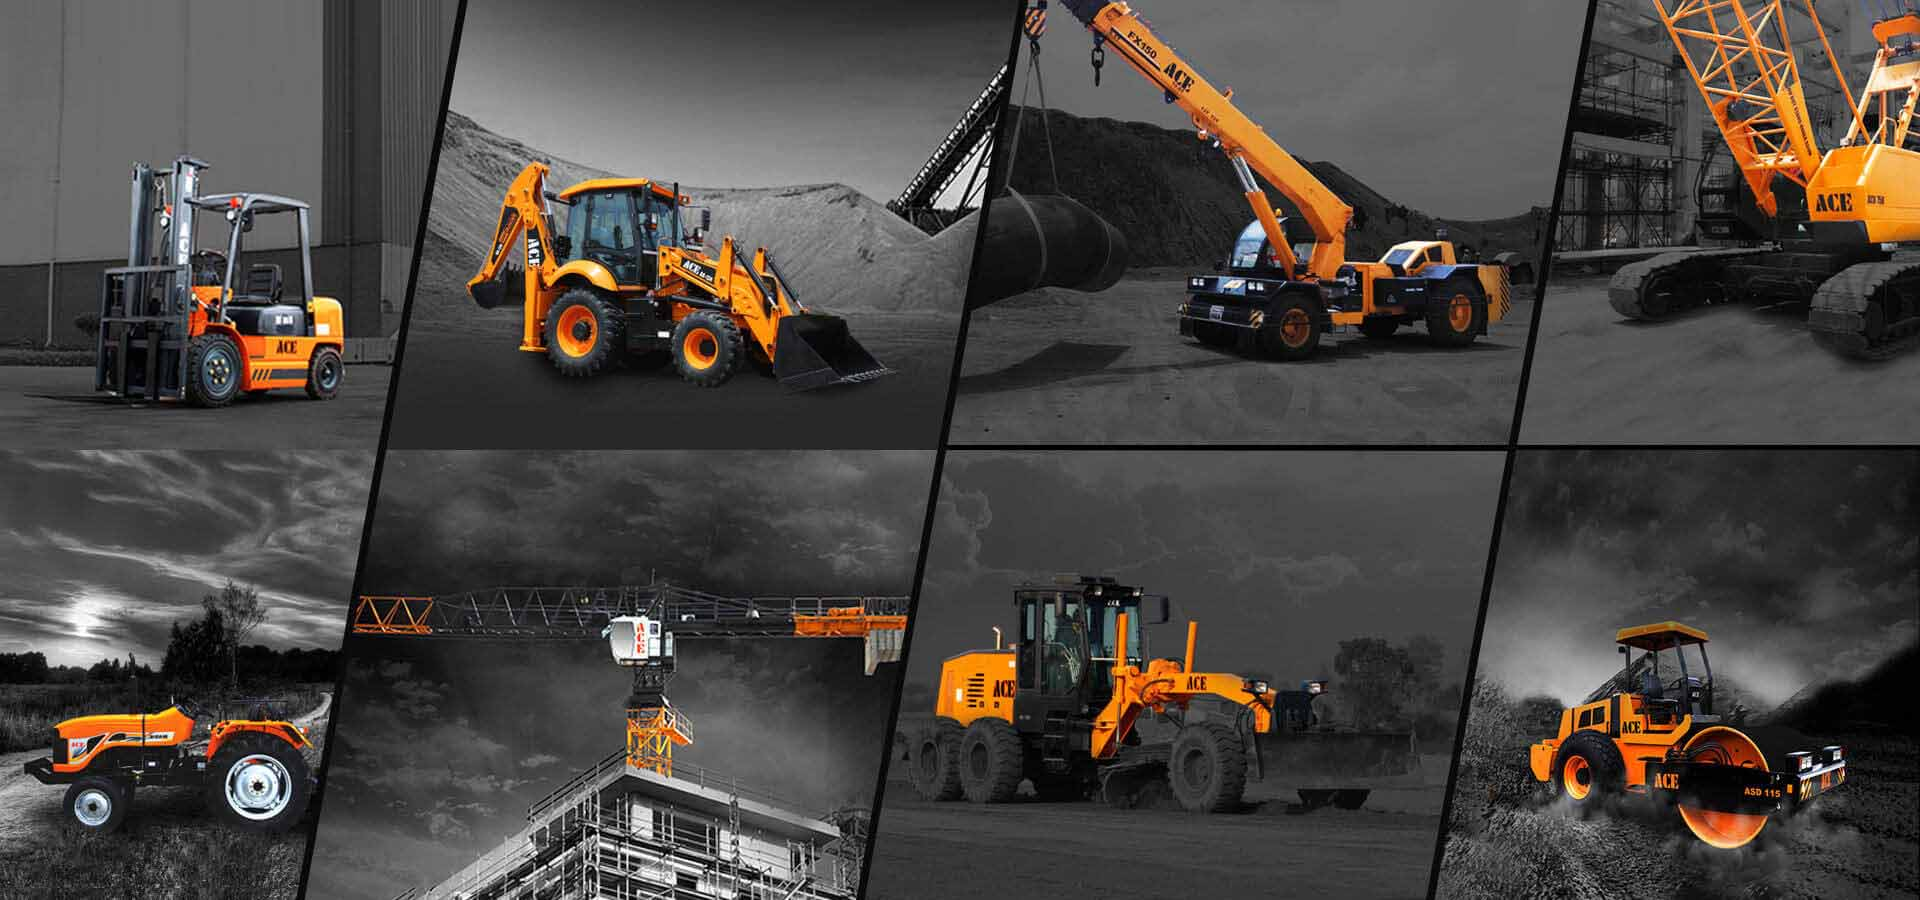 ACE | Construction Equipment Manufacturing Company in India